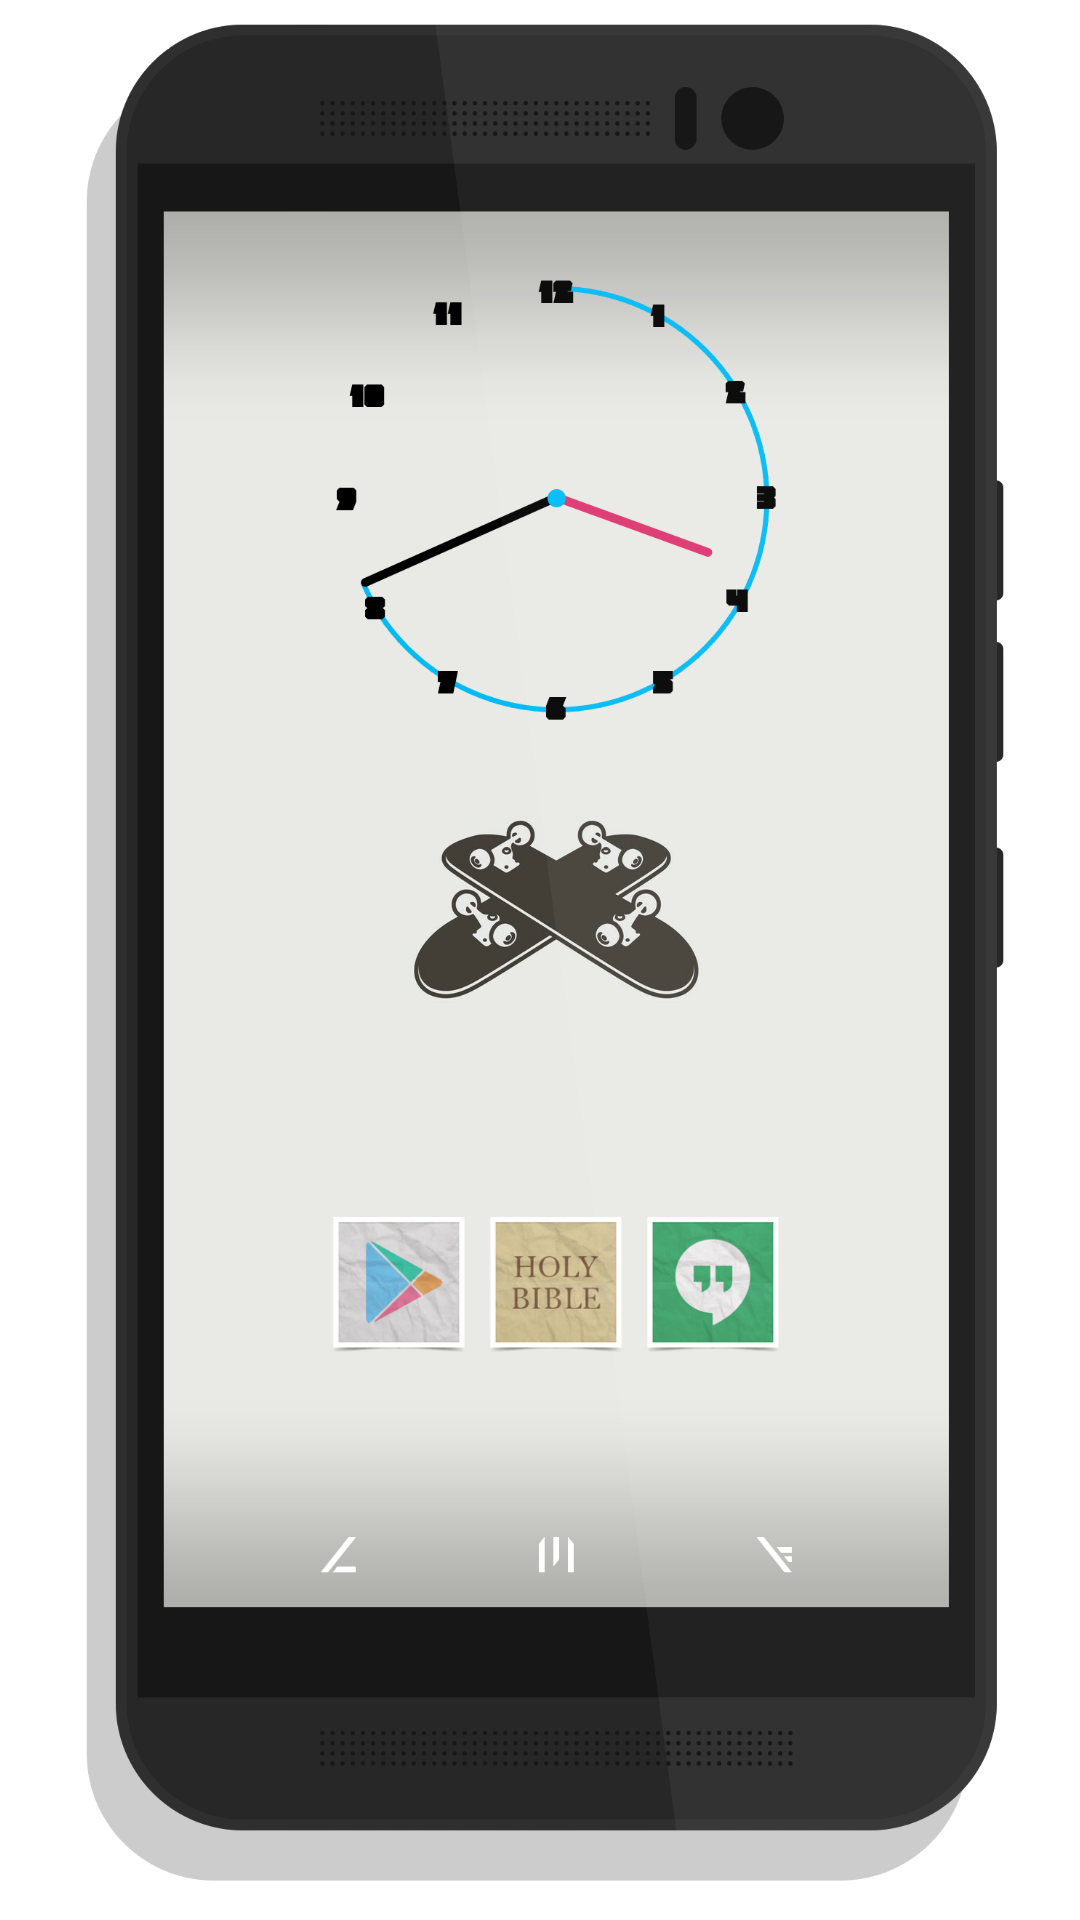 Android Customization Zooper Zoopreme Widgets Wallpaper Icons Phone